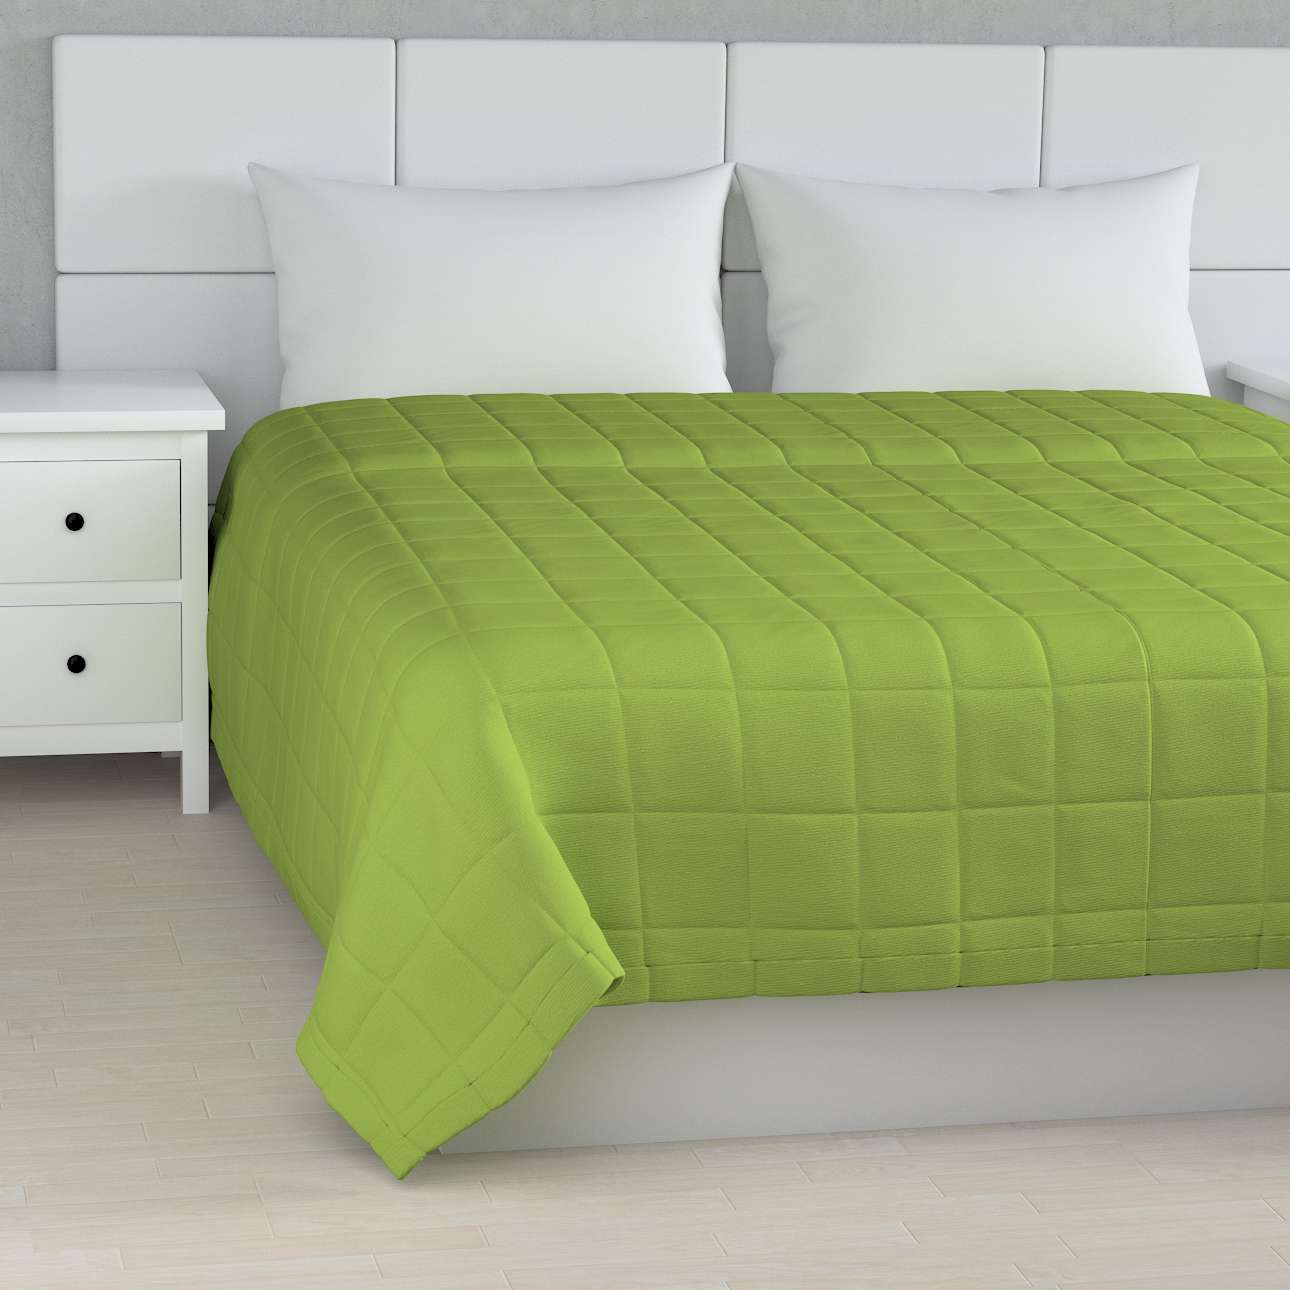 Quilted throw (check quilt pattern) 260 x 210 cm (102 x 83 inch) in collection Quadro, fabric: 136-37